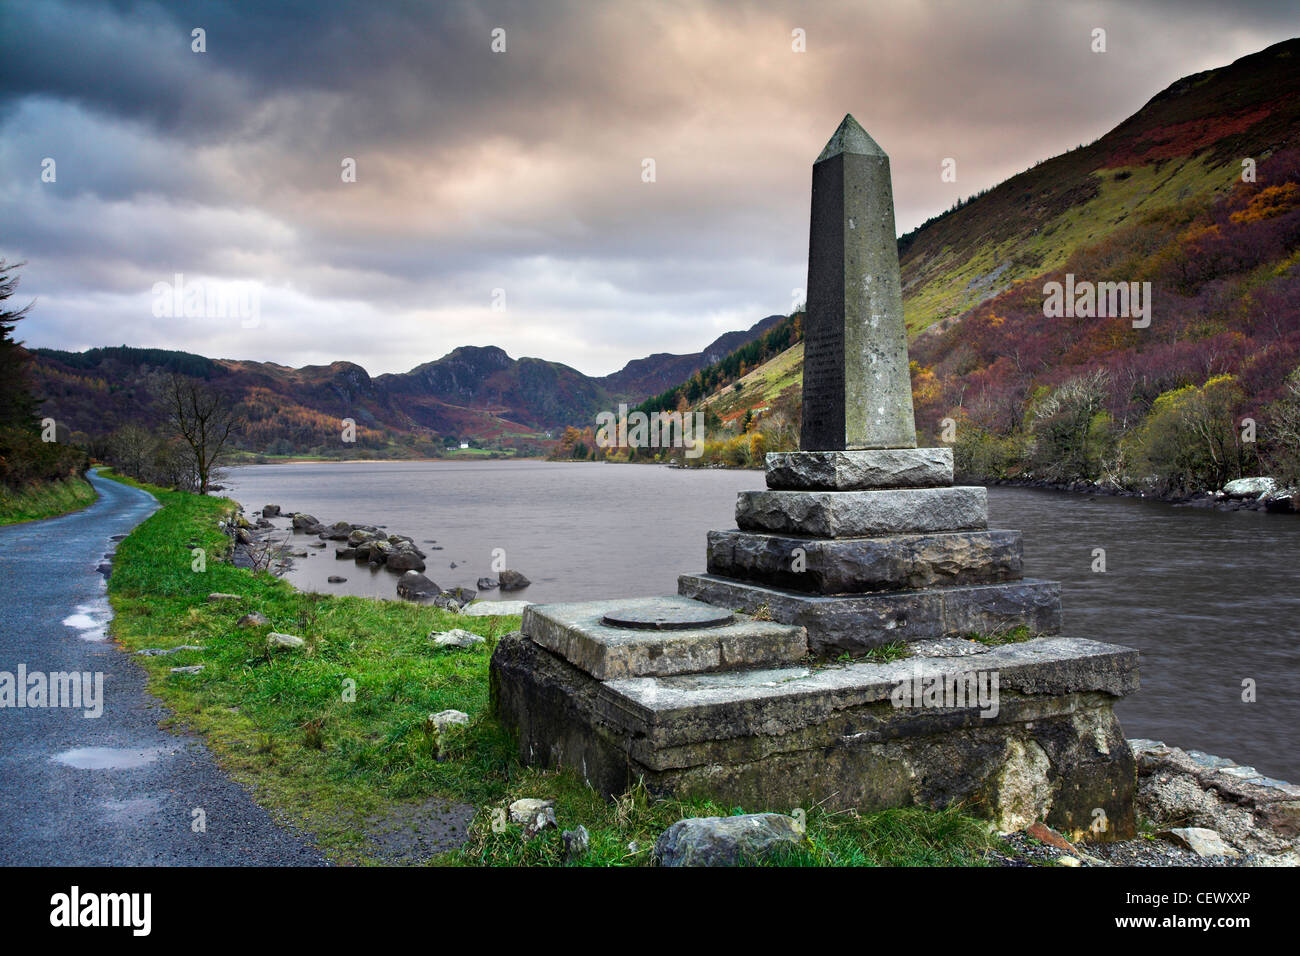 Memorial to commemorate the donation of Llyn Crafnant to the people of Llanrwst by Richard James. - Stock Image